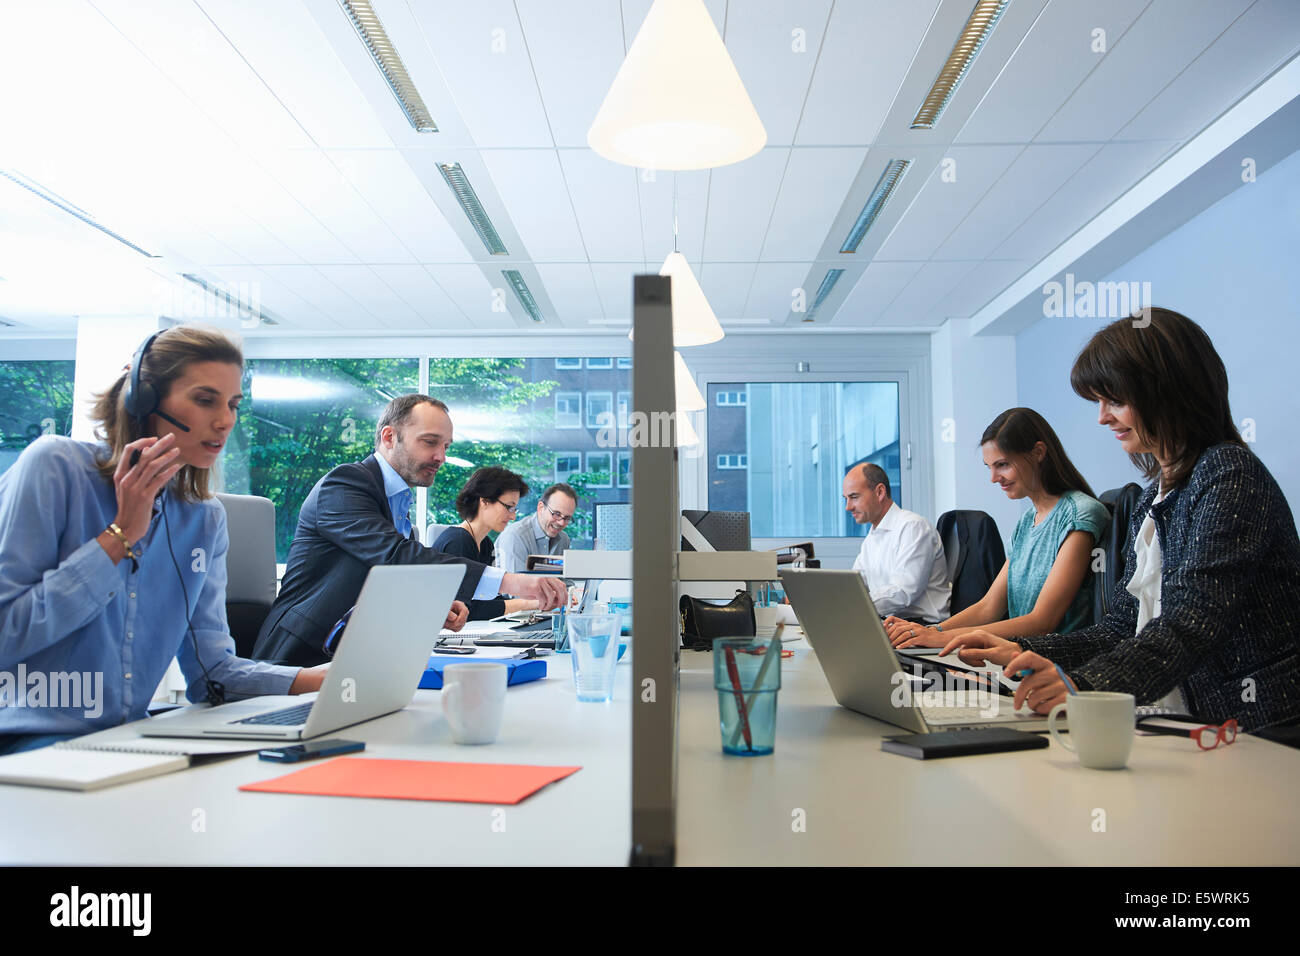 Businesspeople sitting on opposite sides of screen partition, working - Stock Image